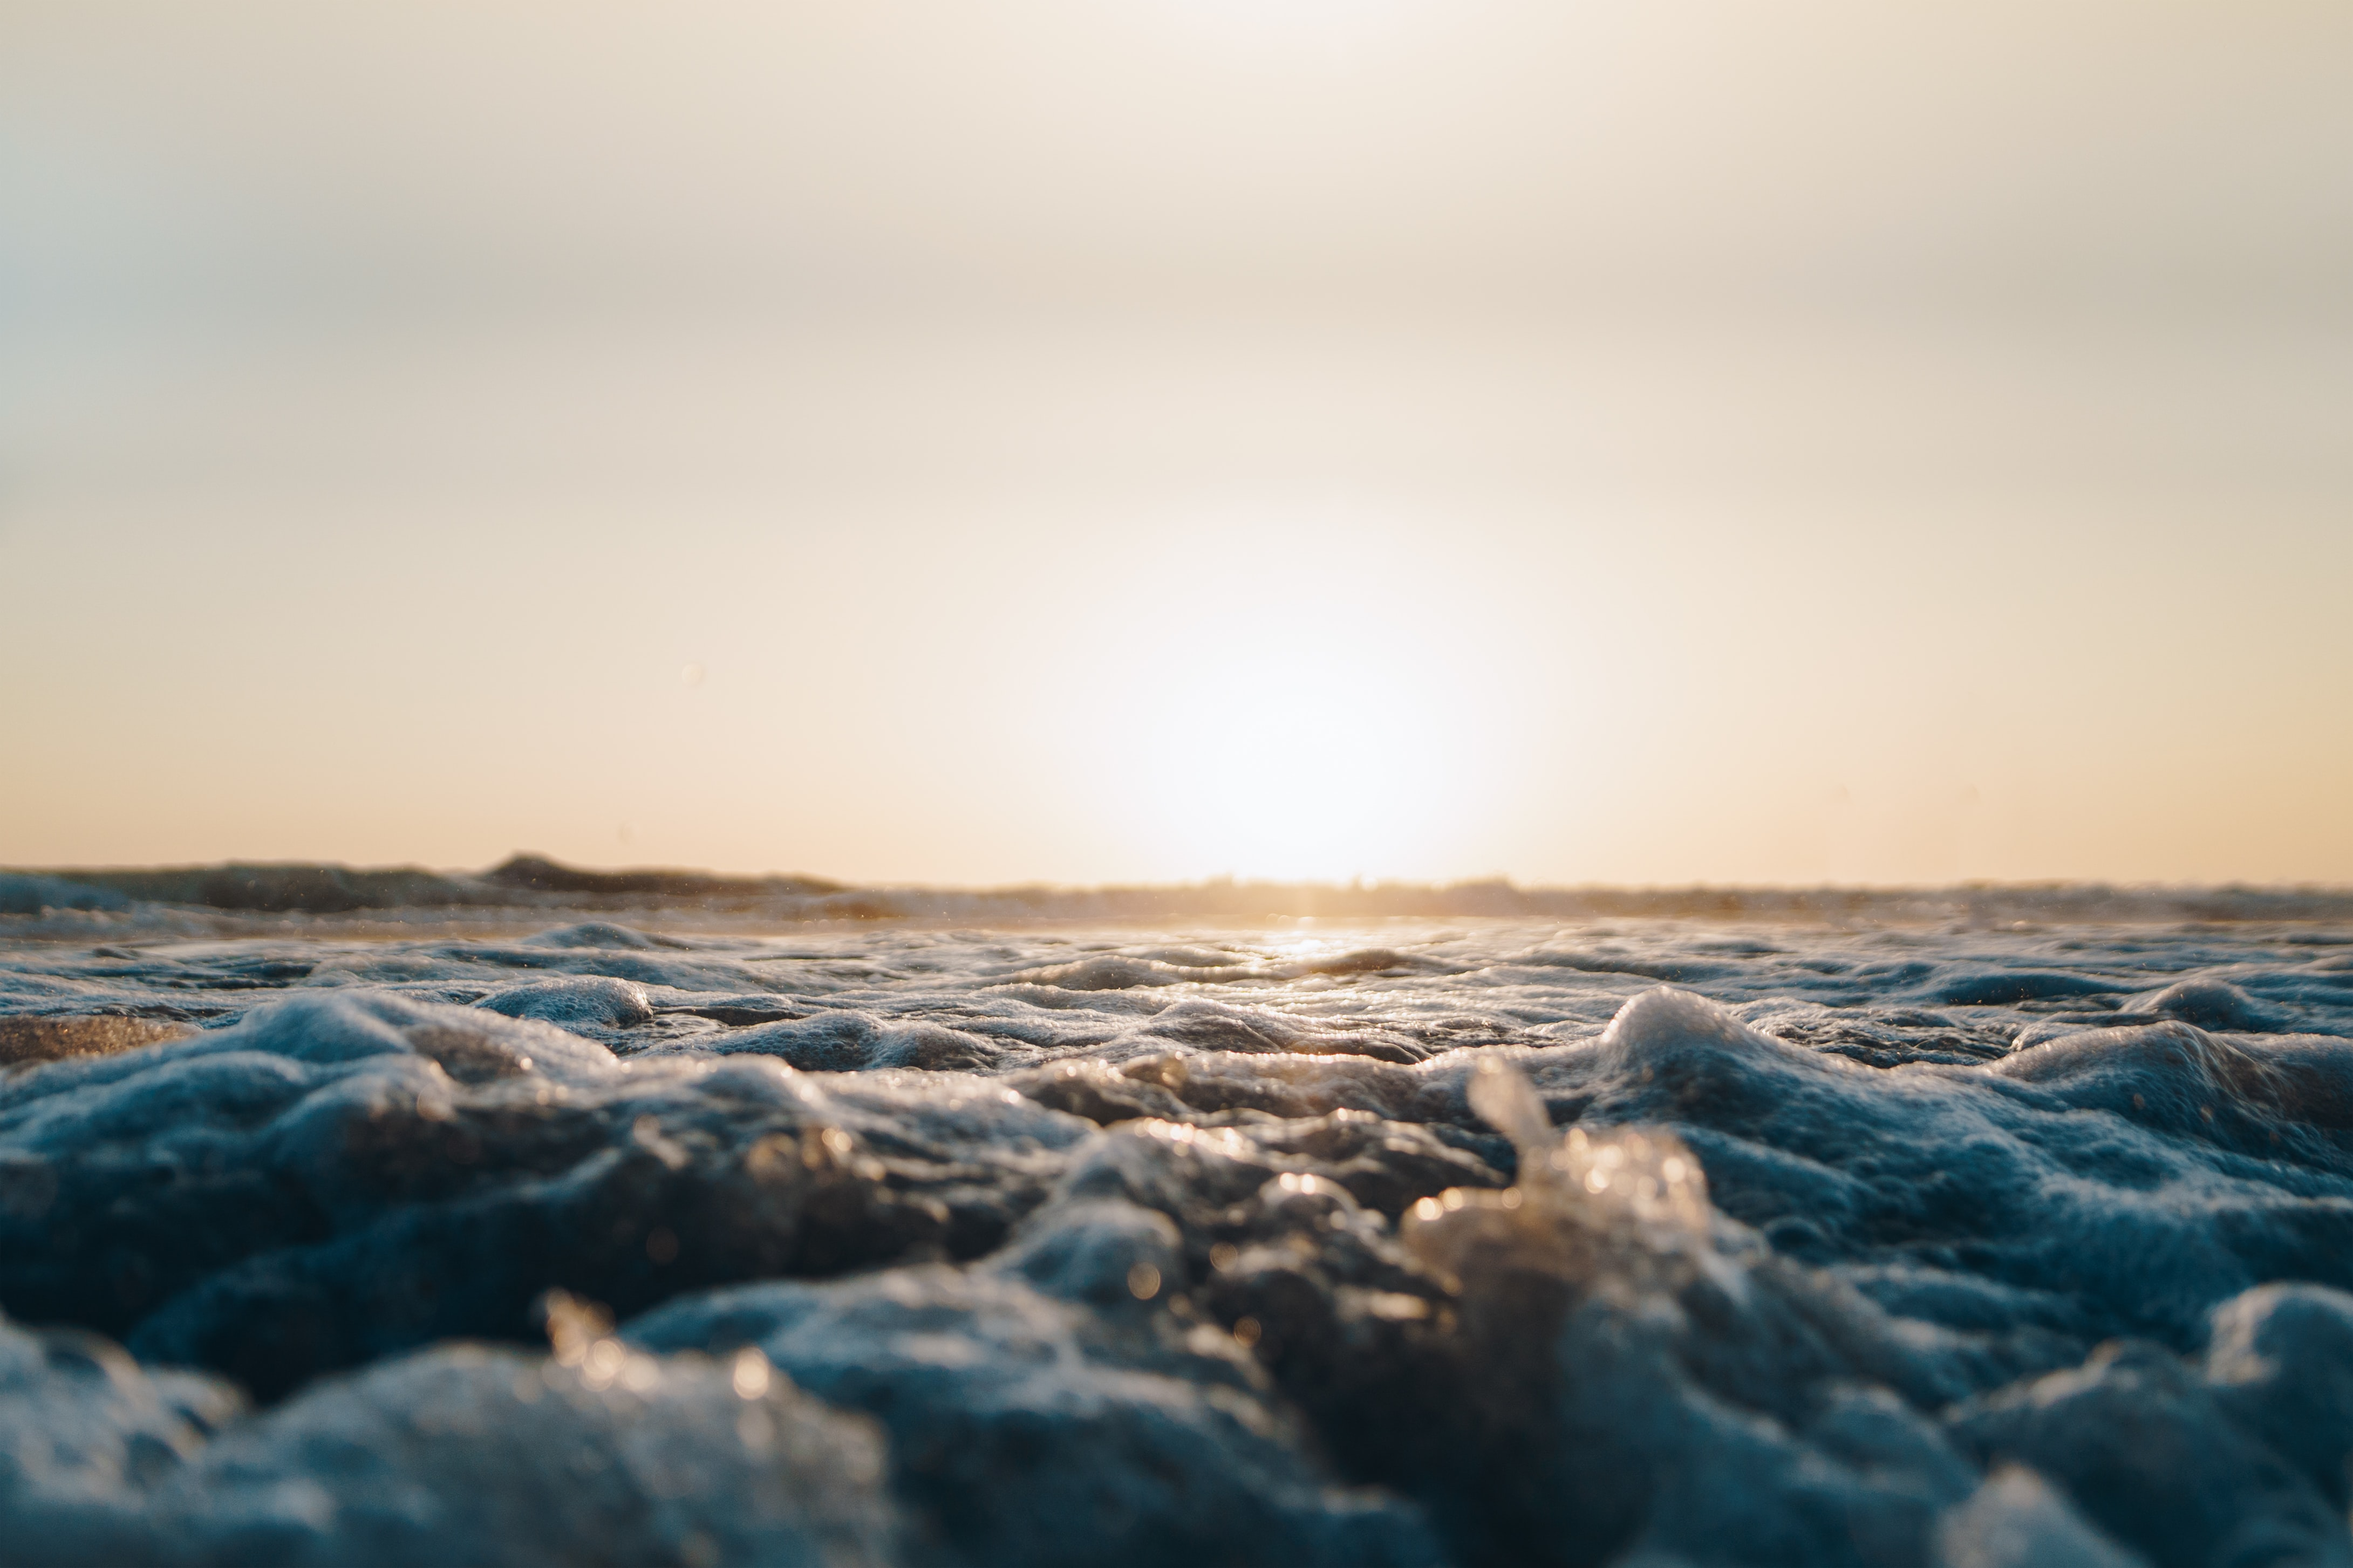 Sun setting in the distance viewed from the foamy ocean at Moonlight State